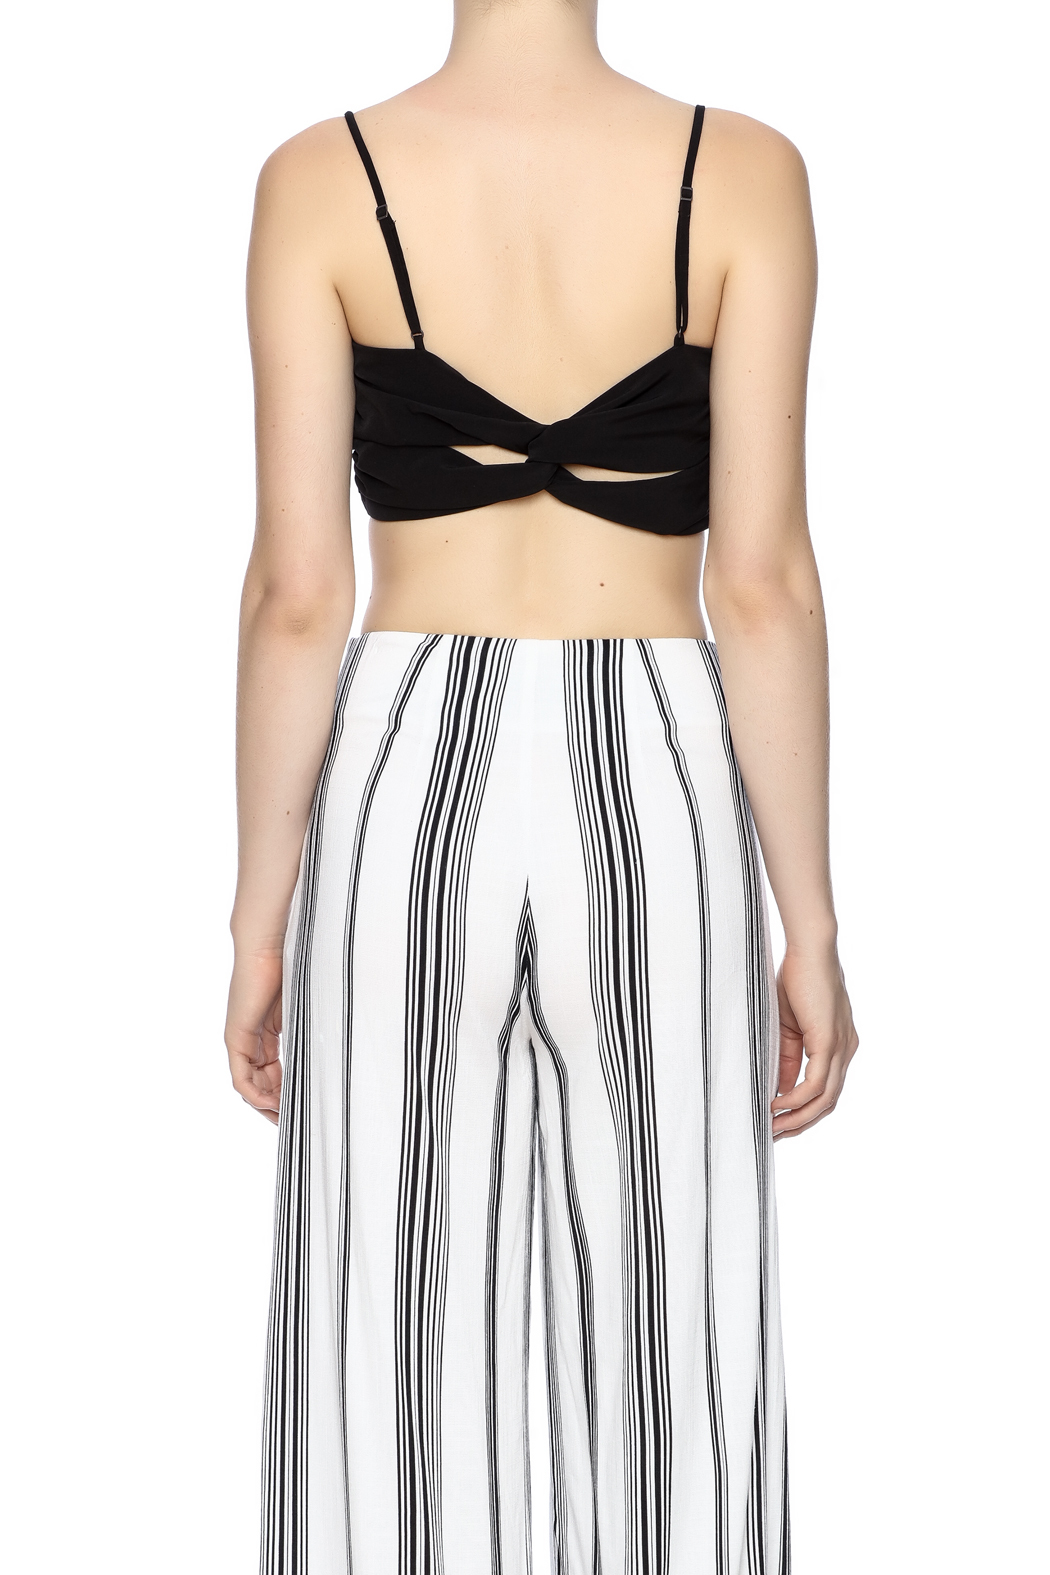 Kendall + Kylie Ruched Crop Bustier - Back Cropped Image